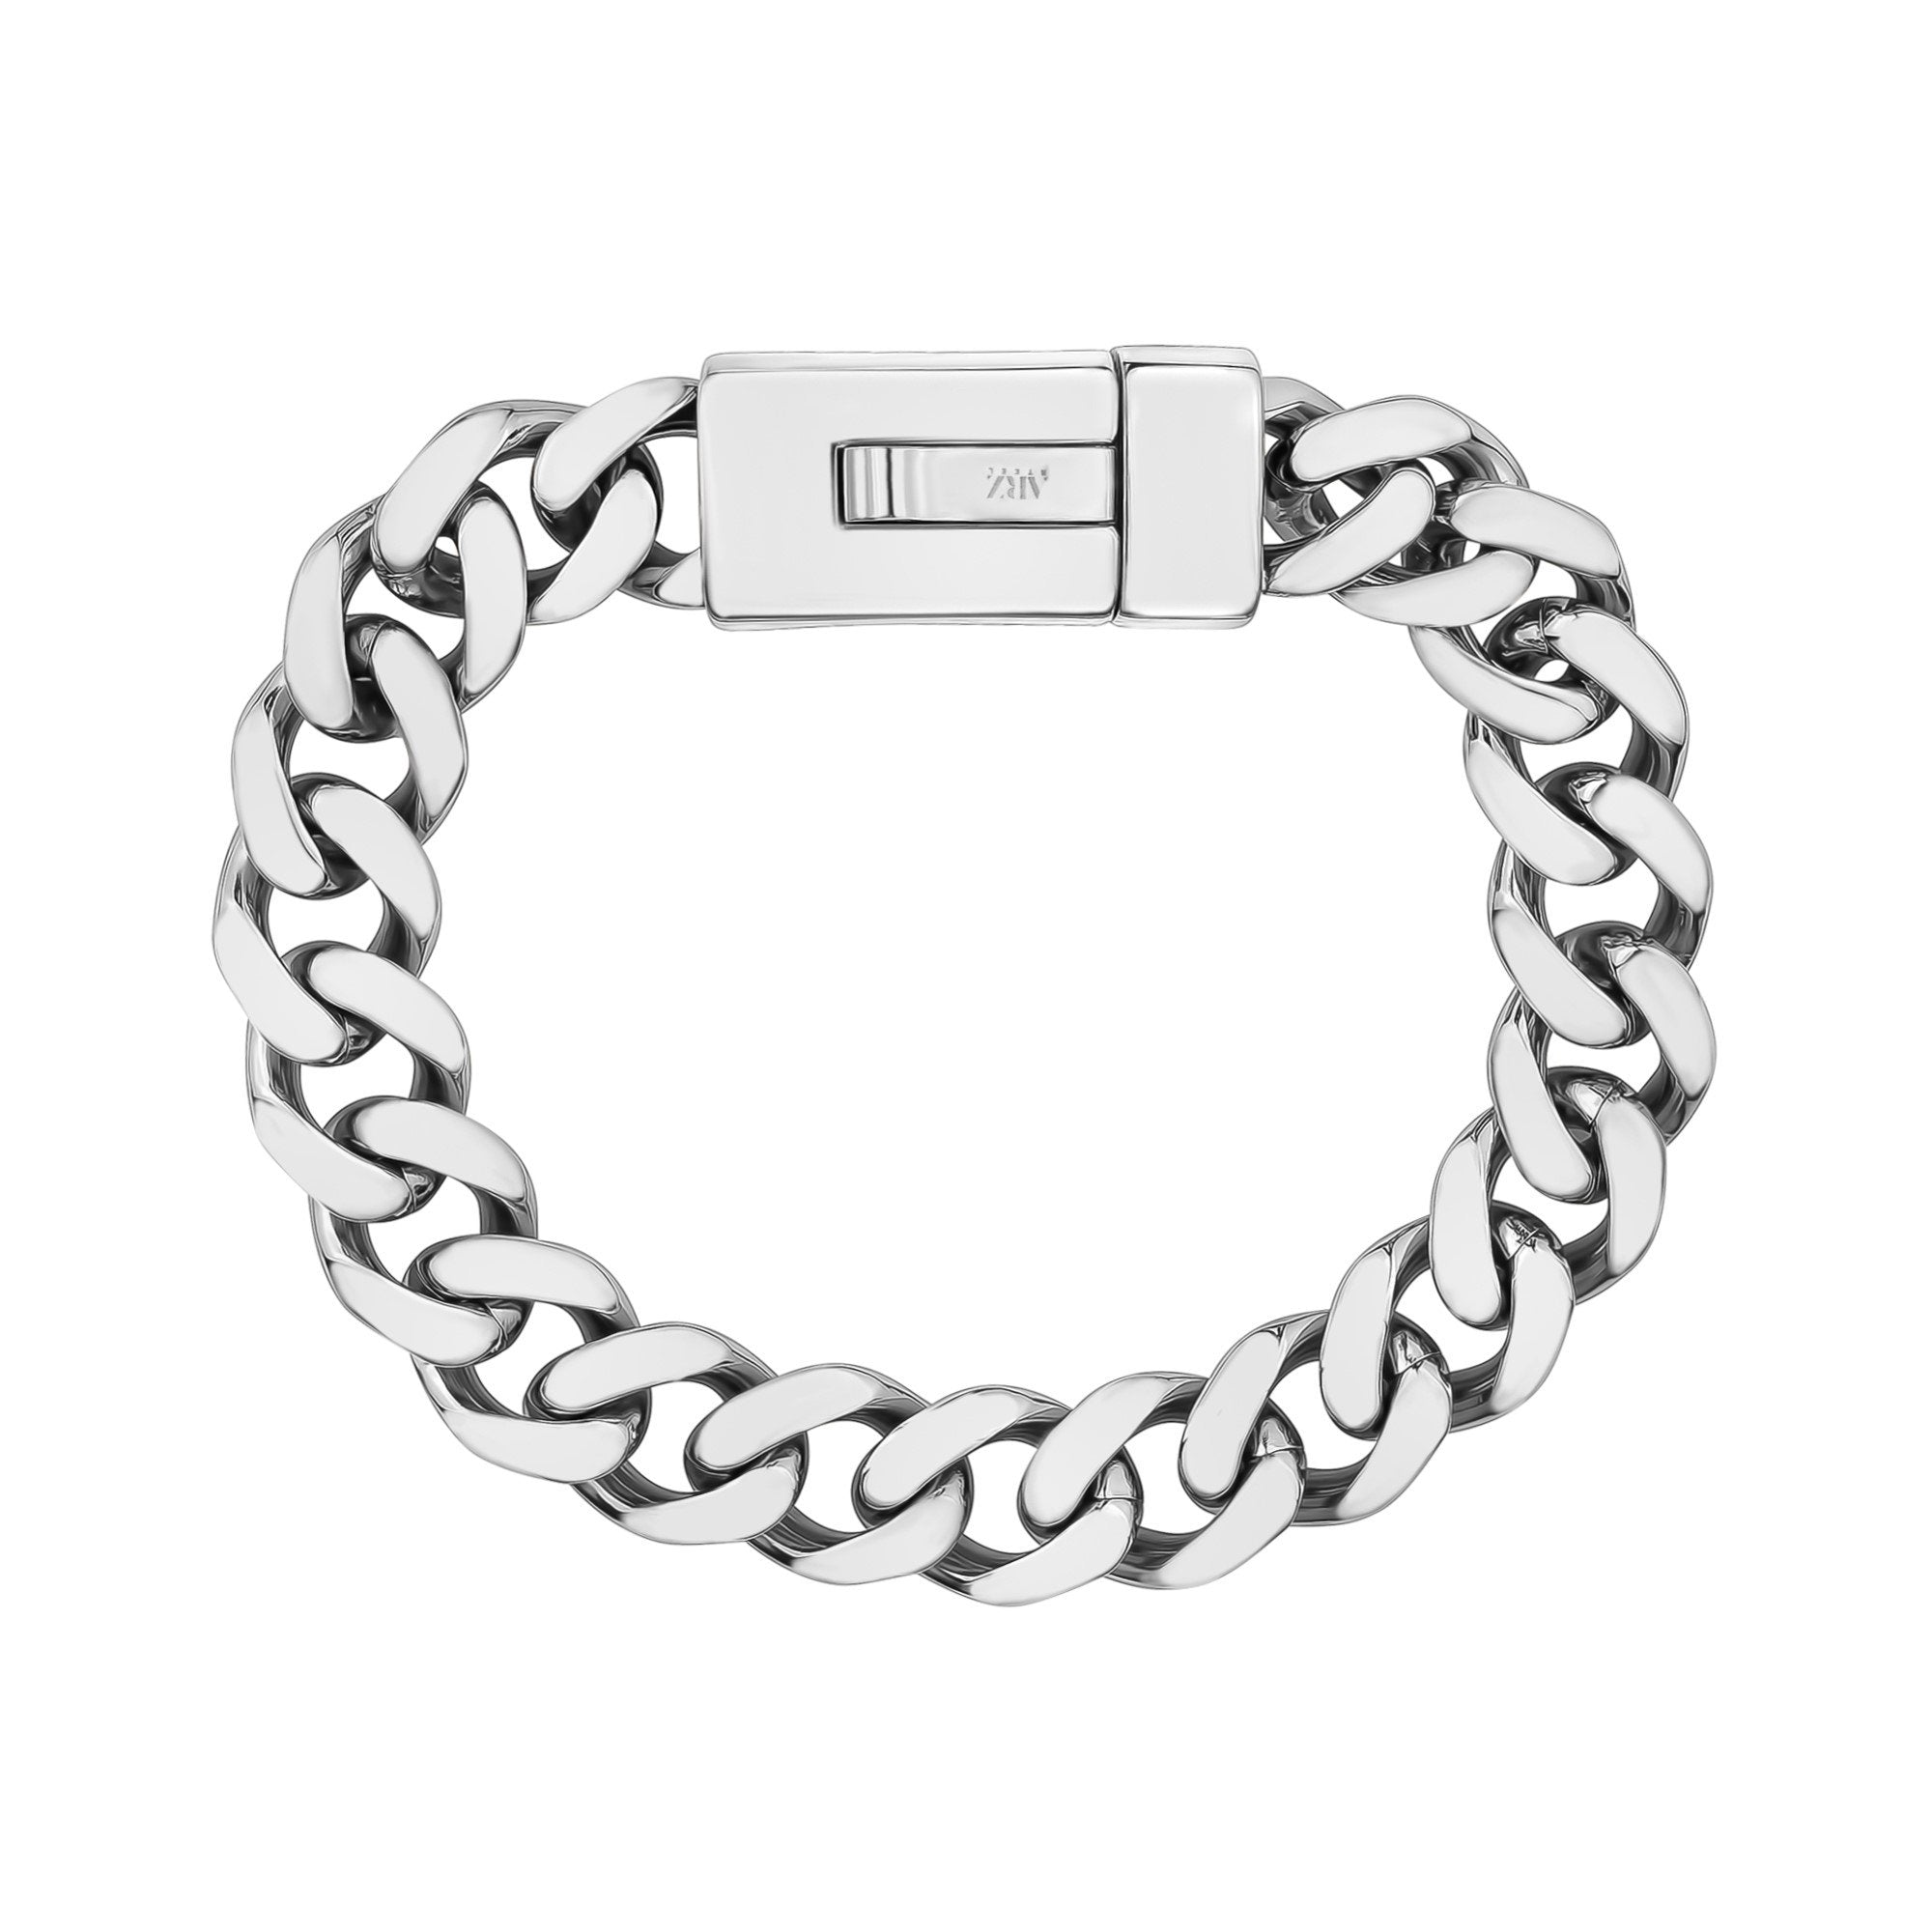 Mens Steel Bracelets - 12mm Stainless Steel Cuban Link Engravable Bracelet